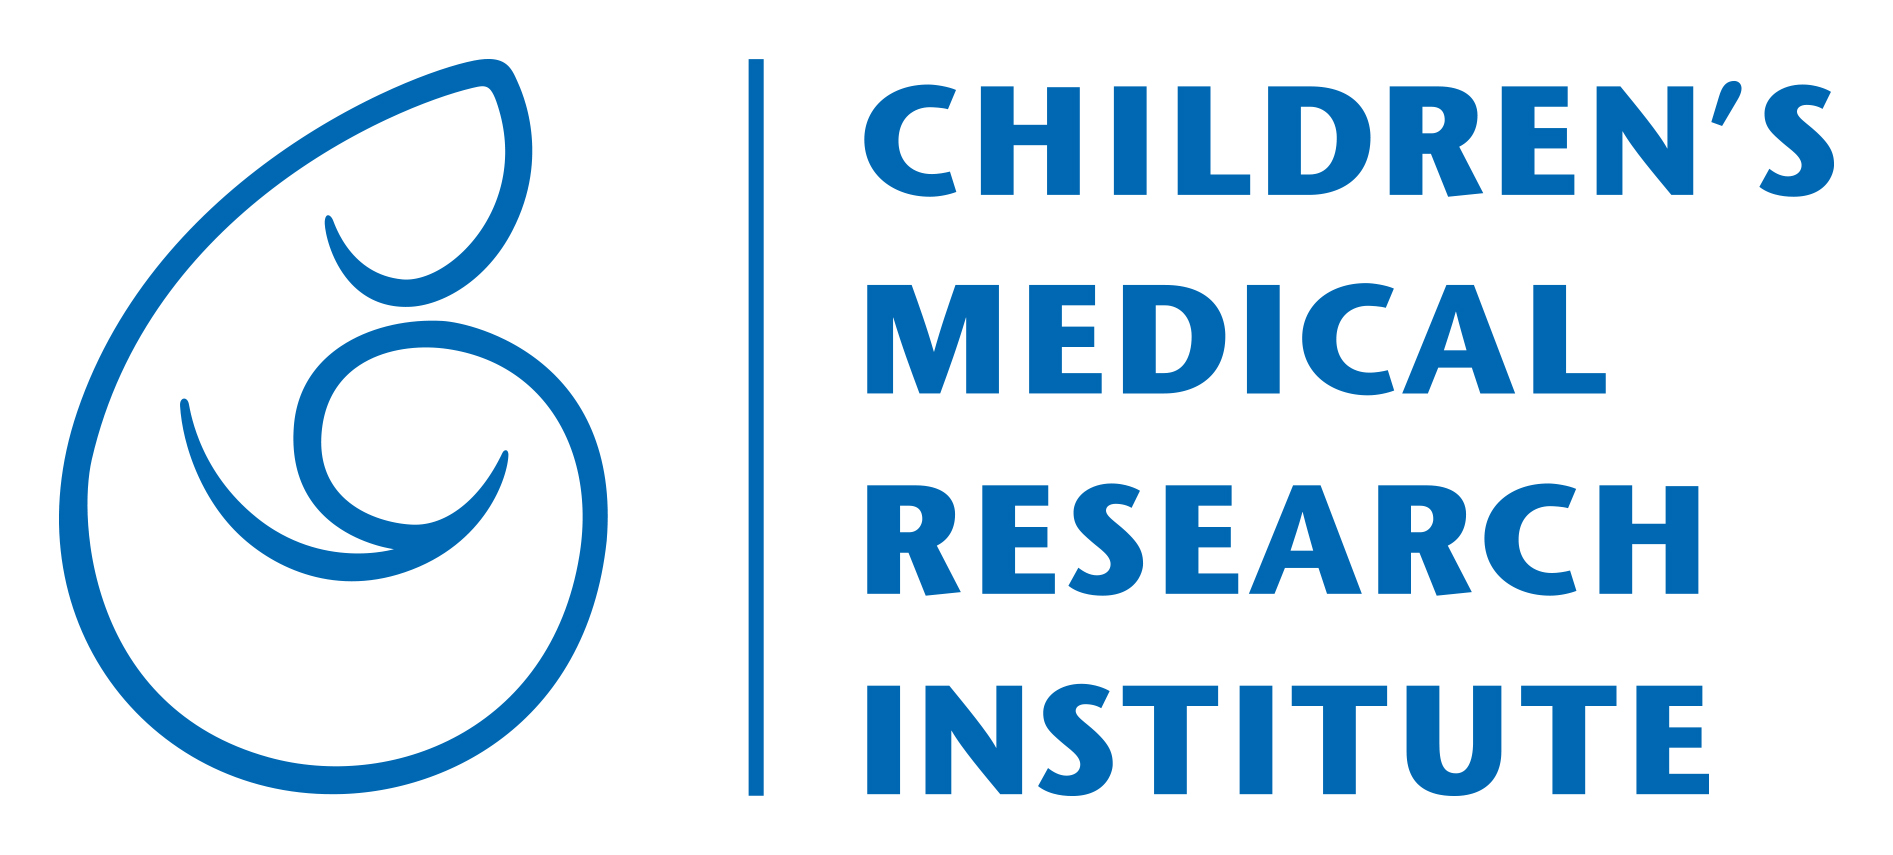 Children's Medical Research Institute logo